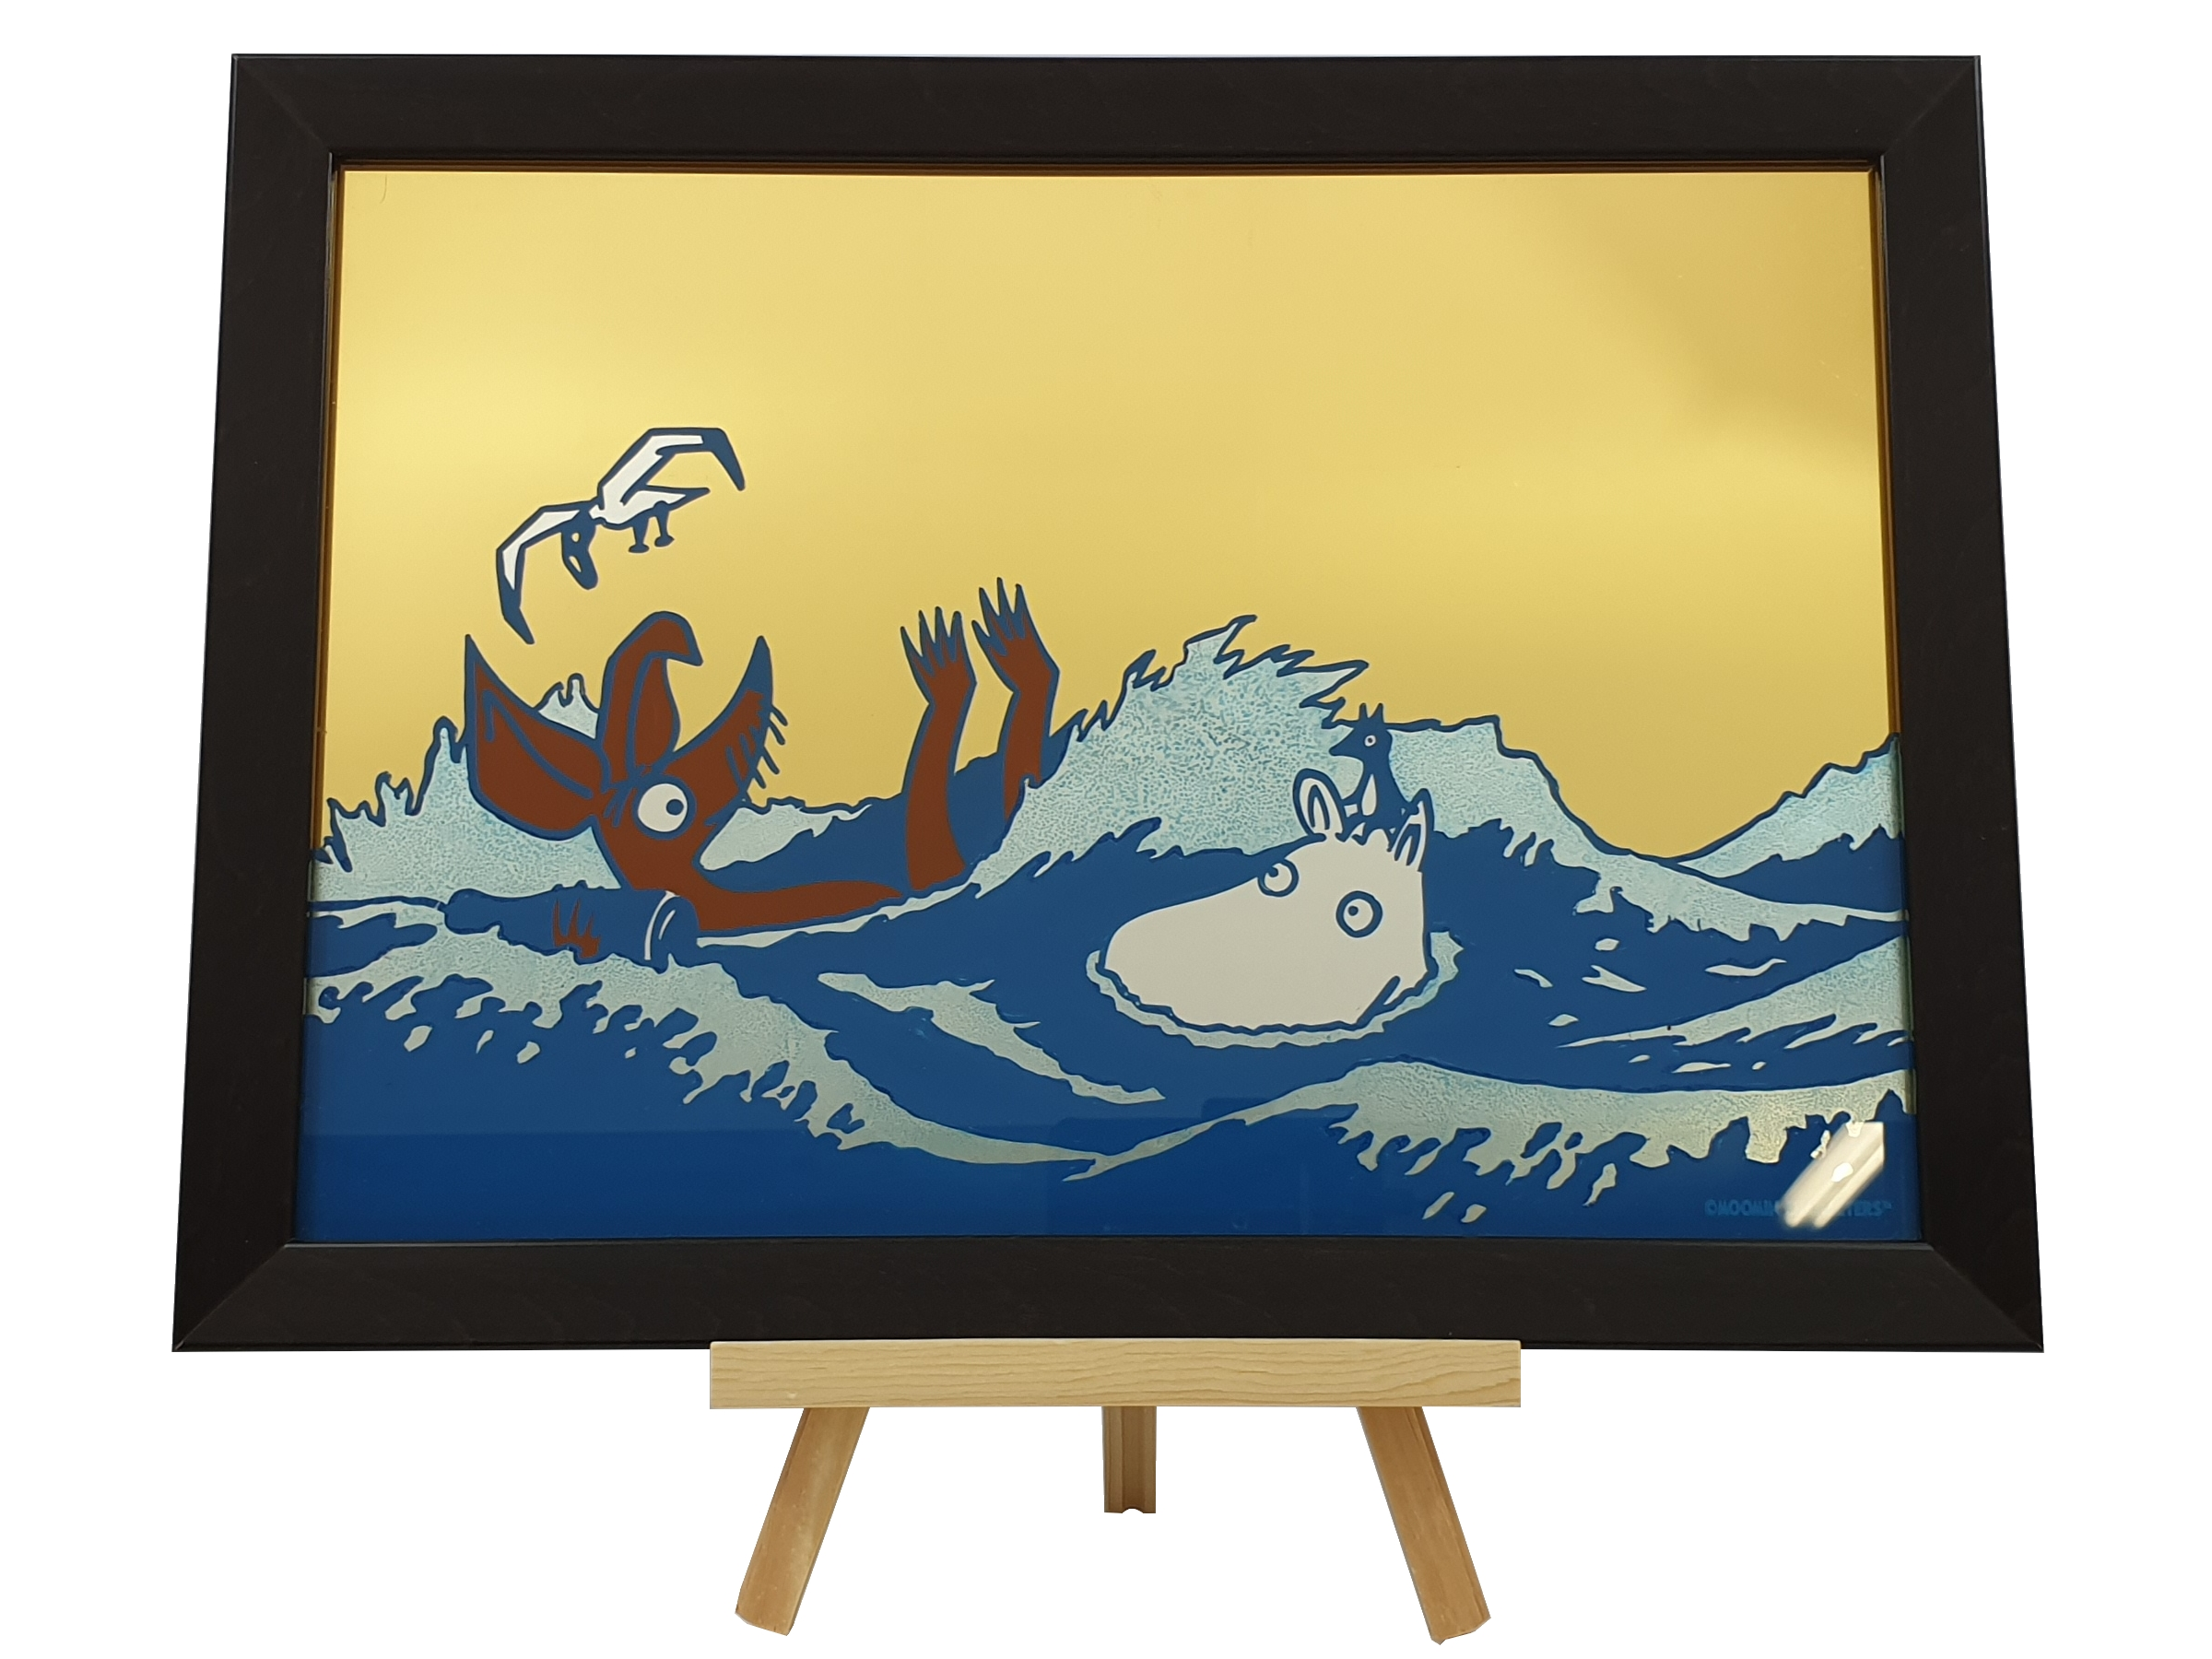 Oslo Skiltmaler Moomin Glass Art | #OurSea Campaign Glass no. 1